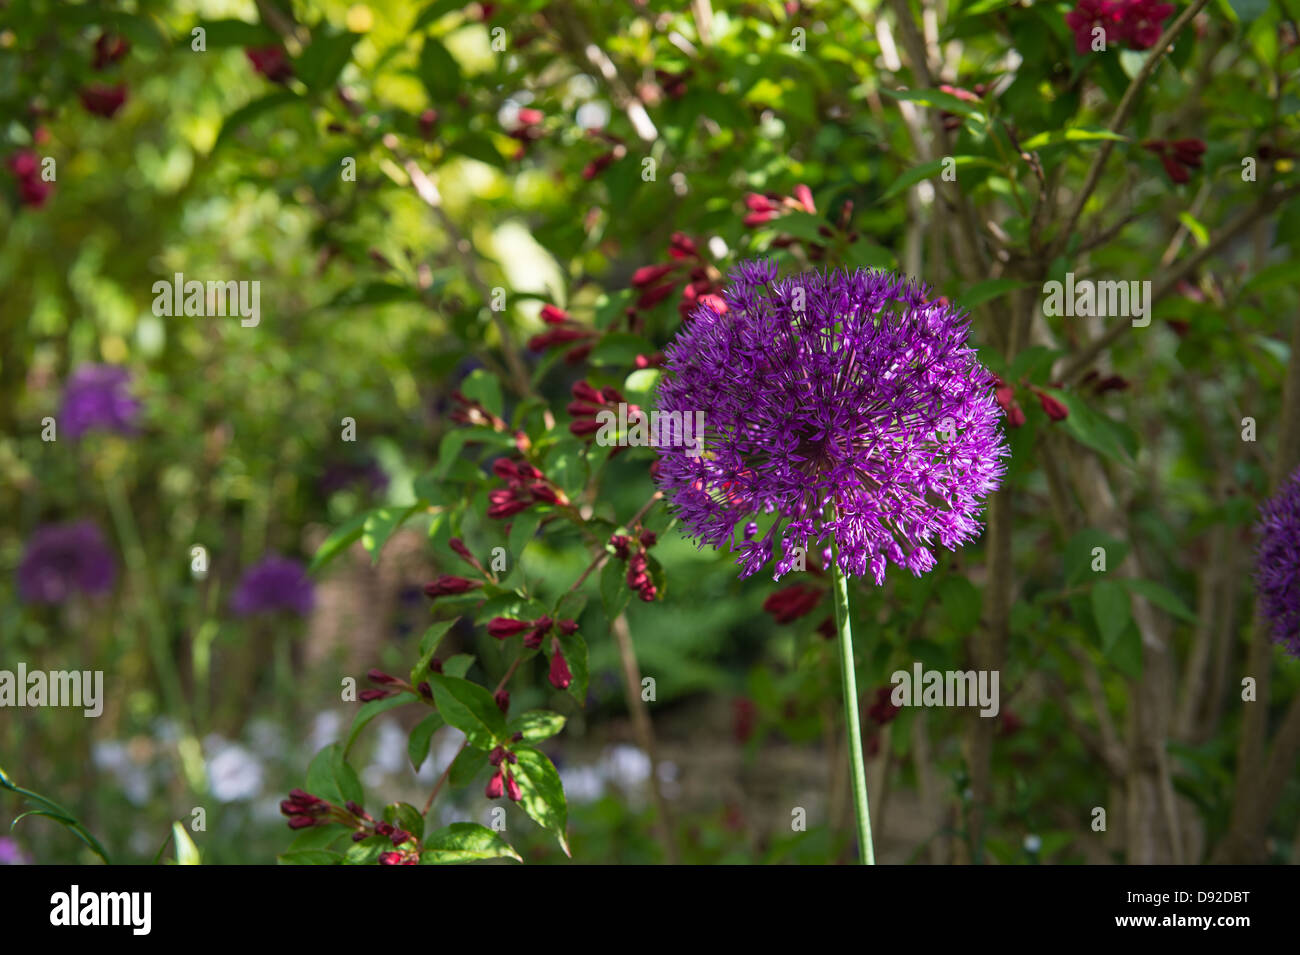 A single large Alium in a shady corner of a garden with a hint of sunlight brightening one side of the flower. - Stock Image